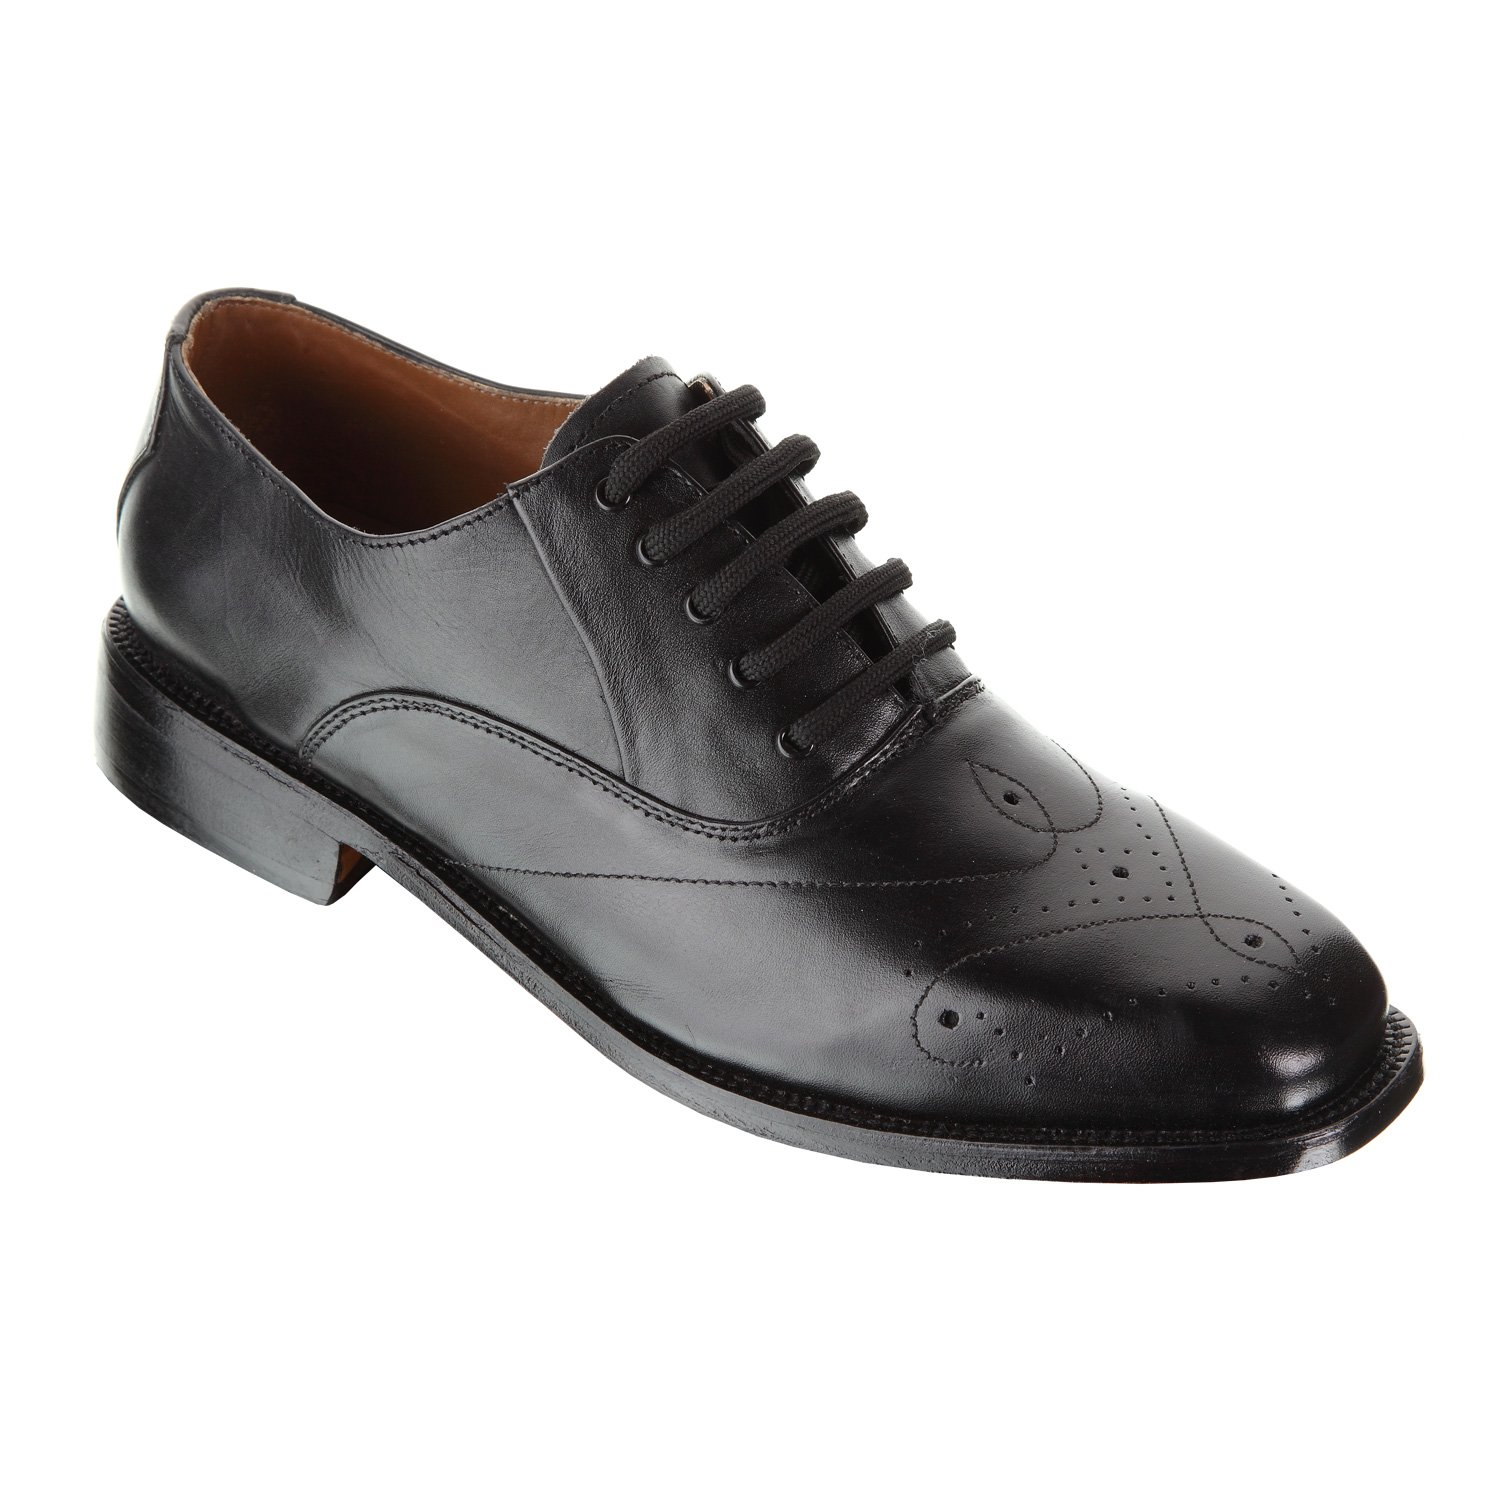 Handmade Damen Frost Paris Mens Wing Tip Oxford Leather Shoes, Hand burnished leather, Color Black, Size US12